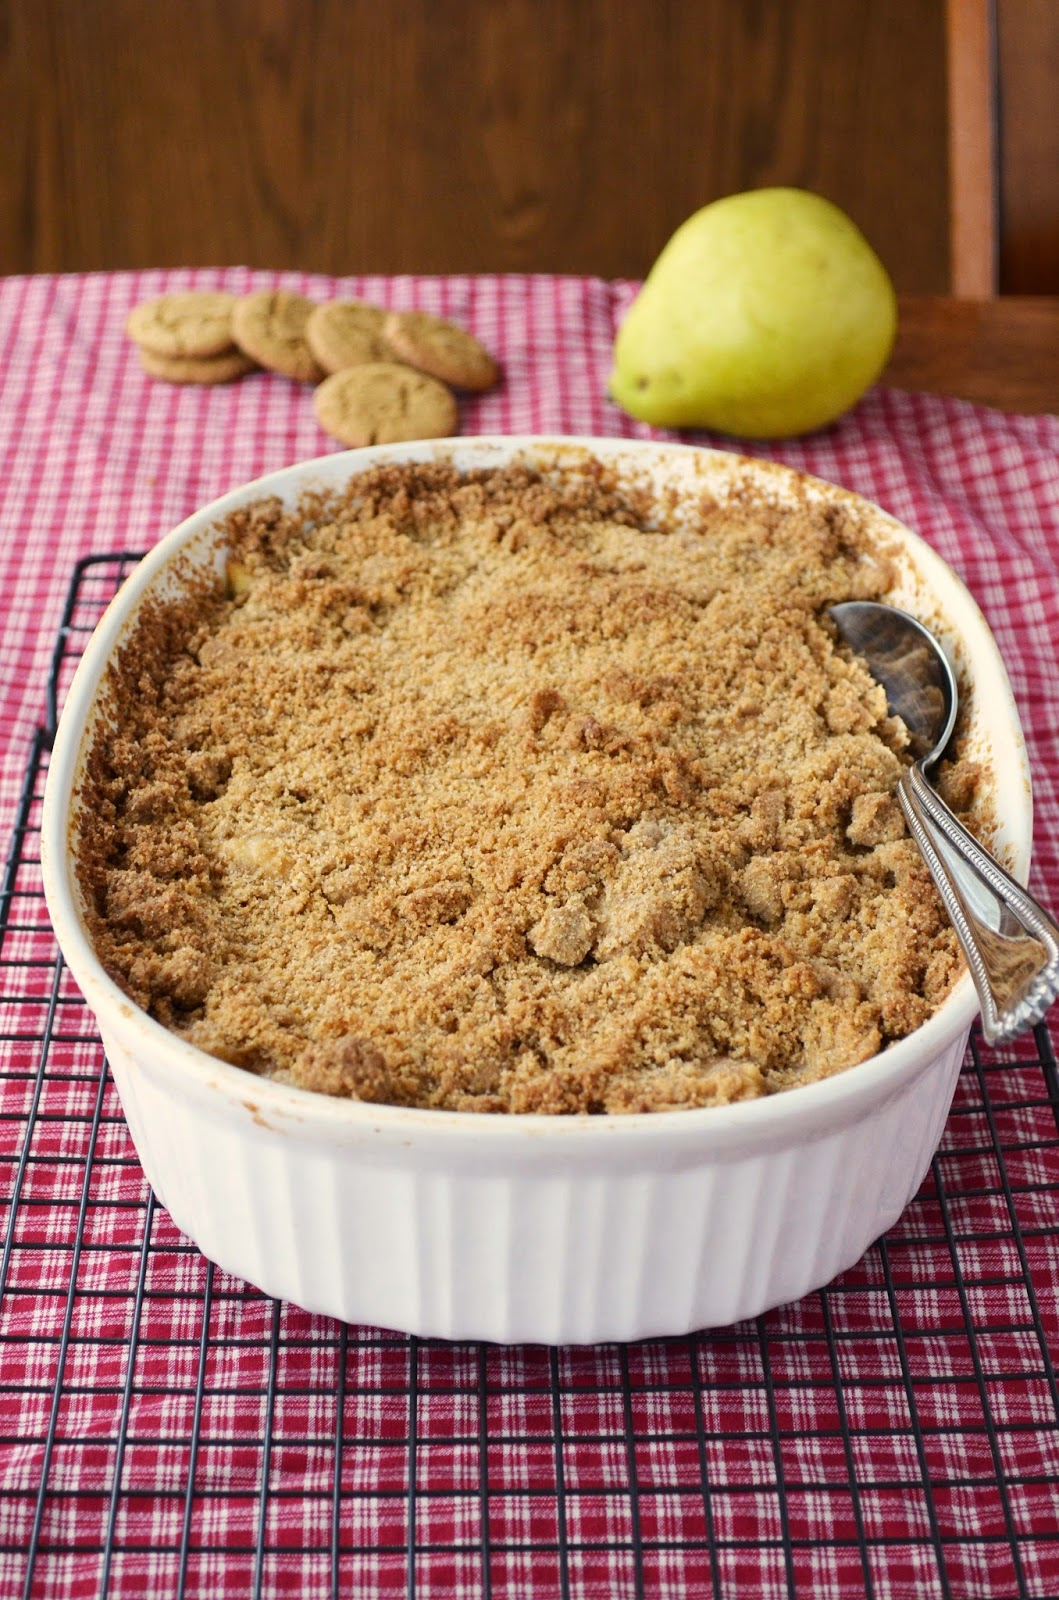 Our Beautiful Mess: Pear, Cranberry, and Gingersnap Crumble